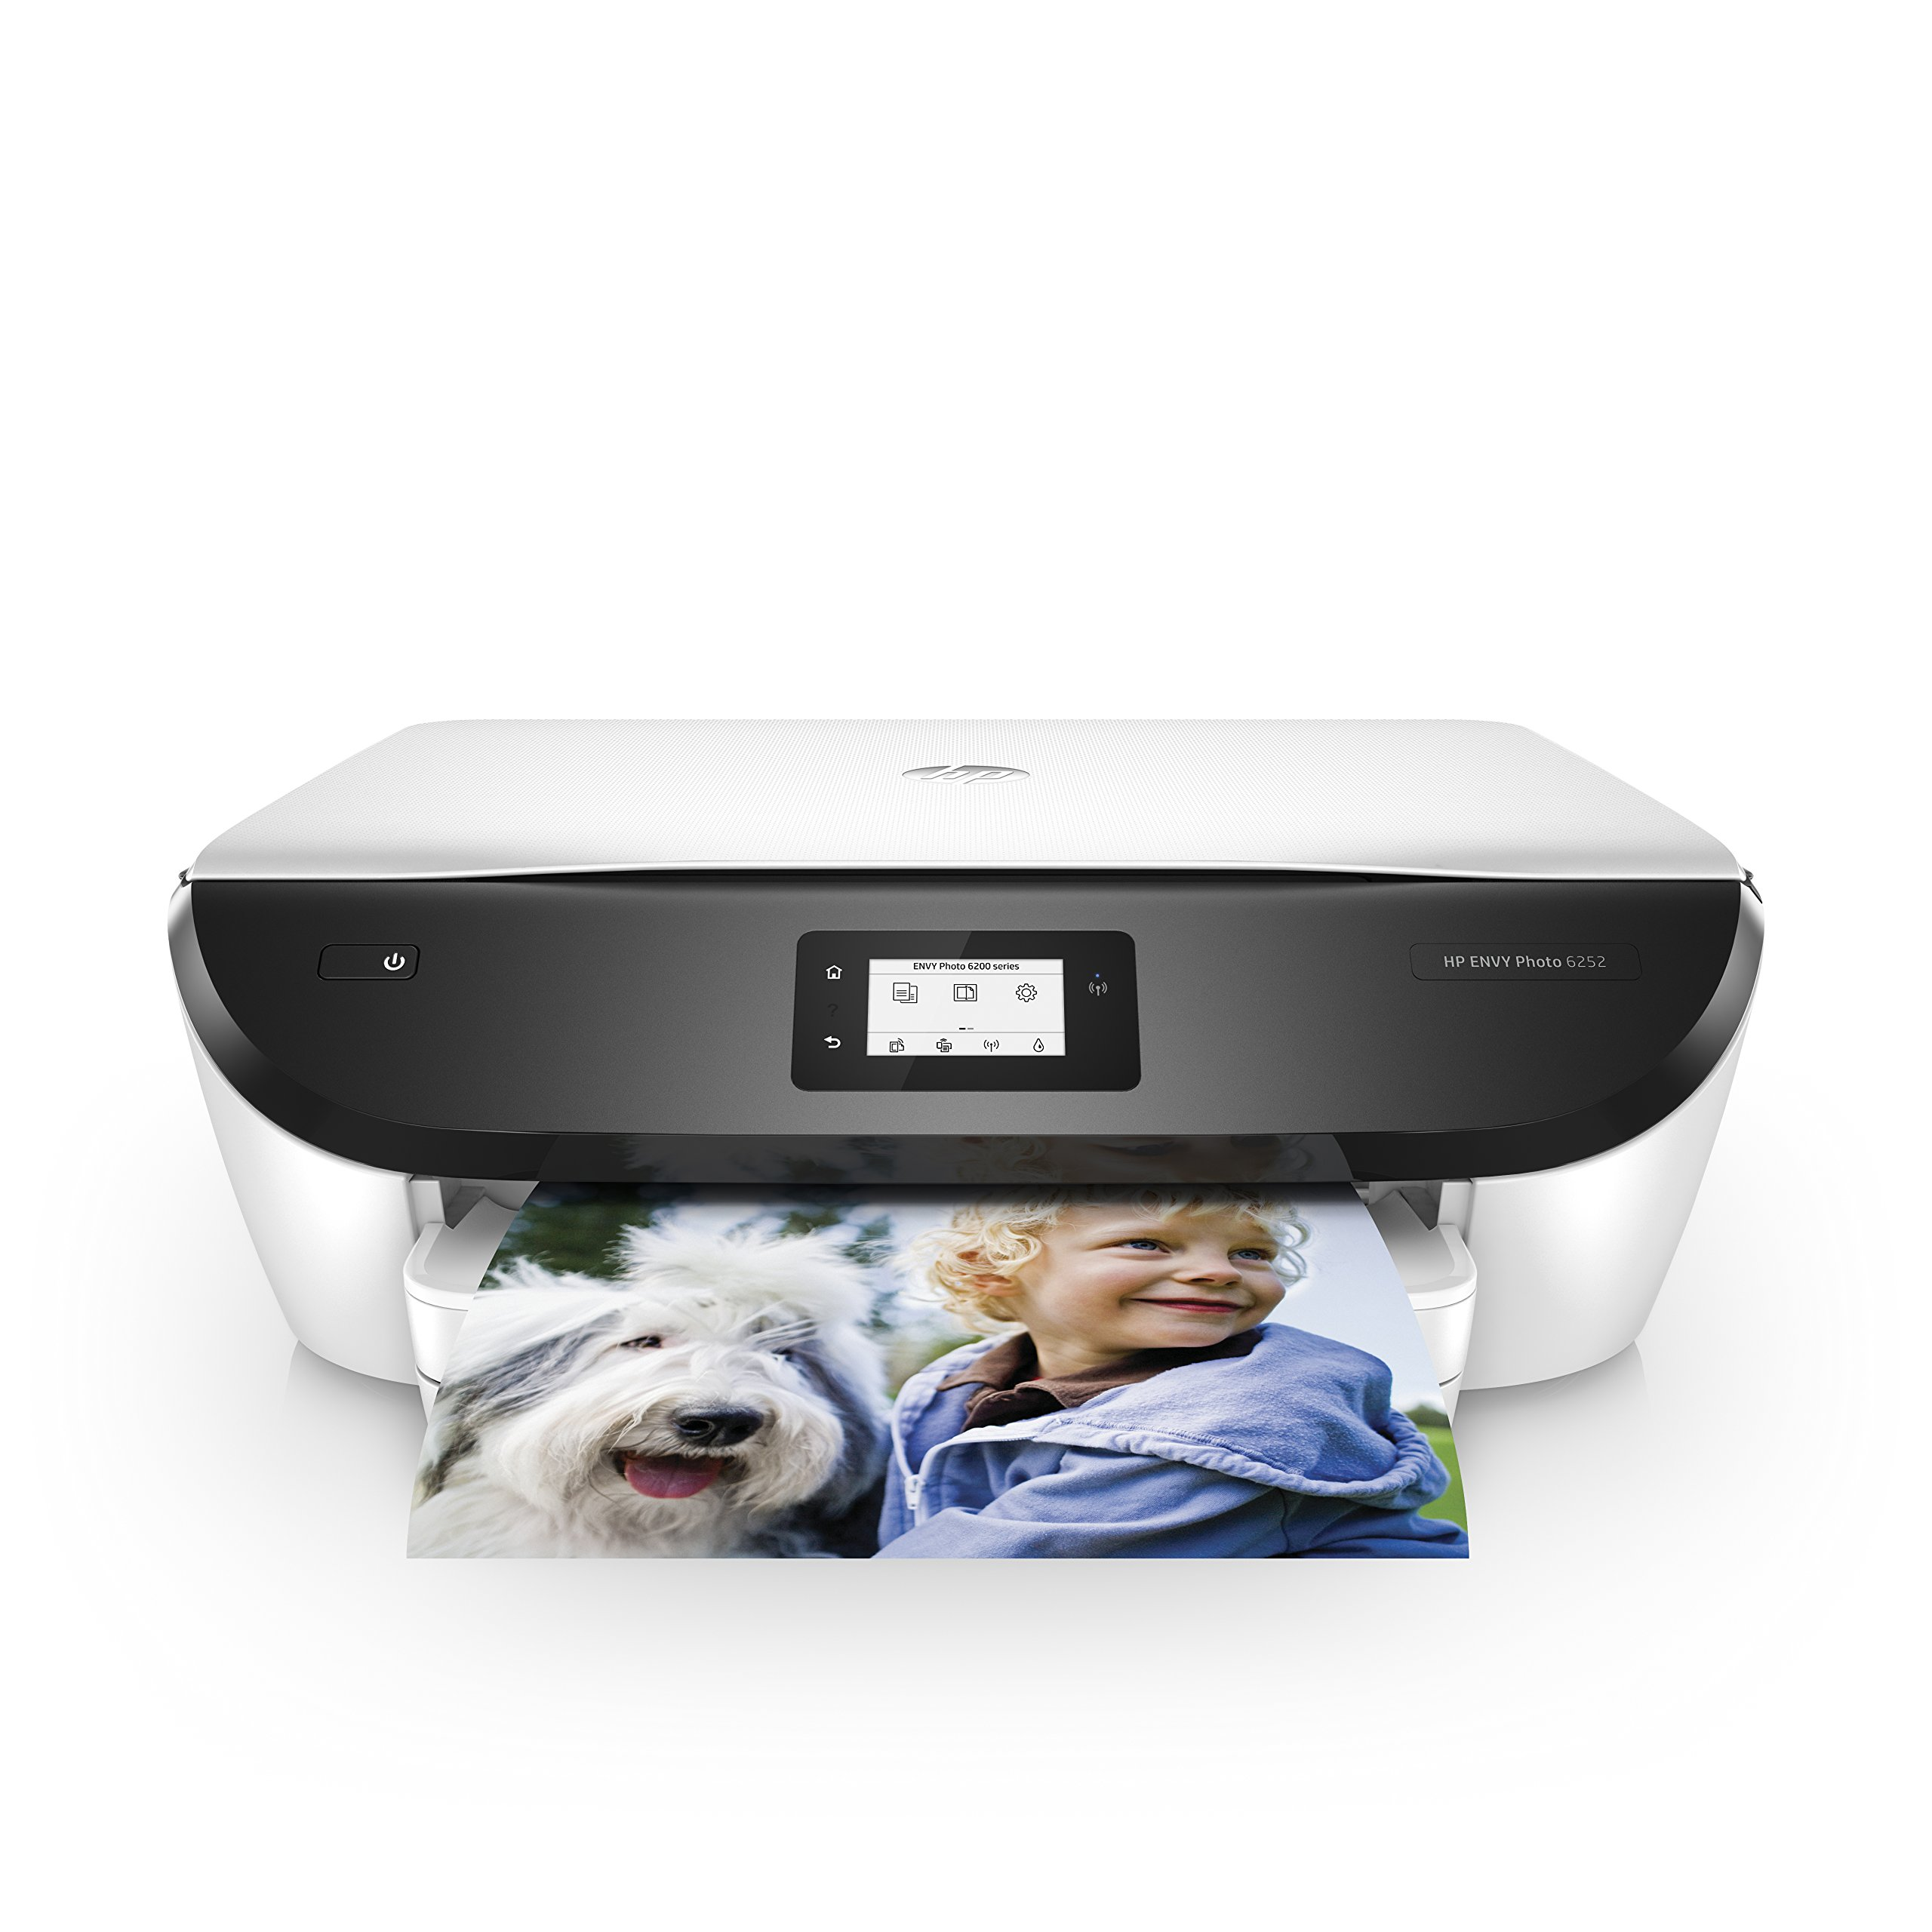 HP Envy Photo 6252 All in One Photo Printer Wireless Printing, Instant Ink Ready (K7G22A) by HP